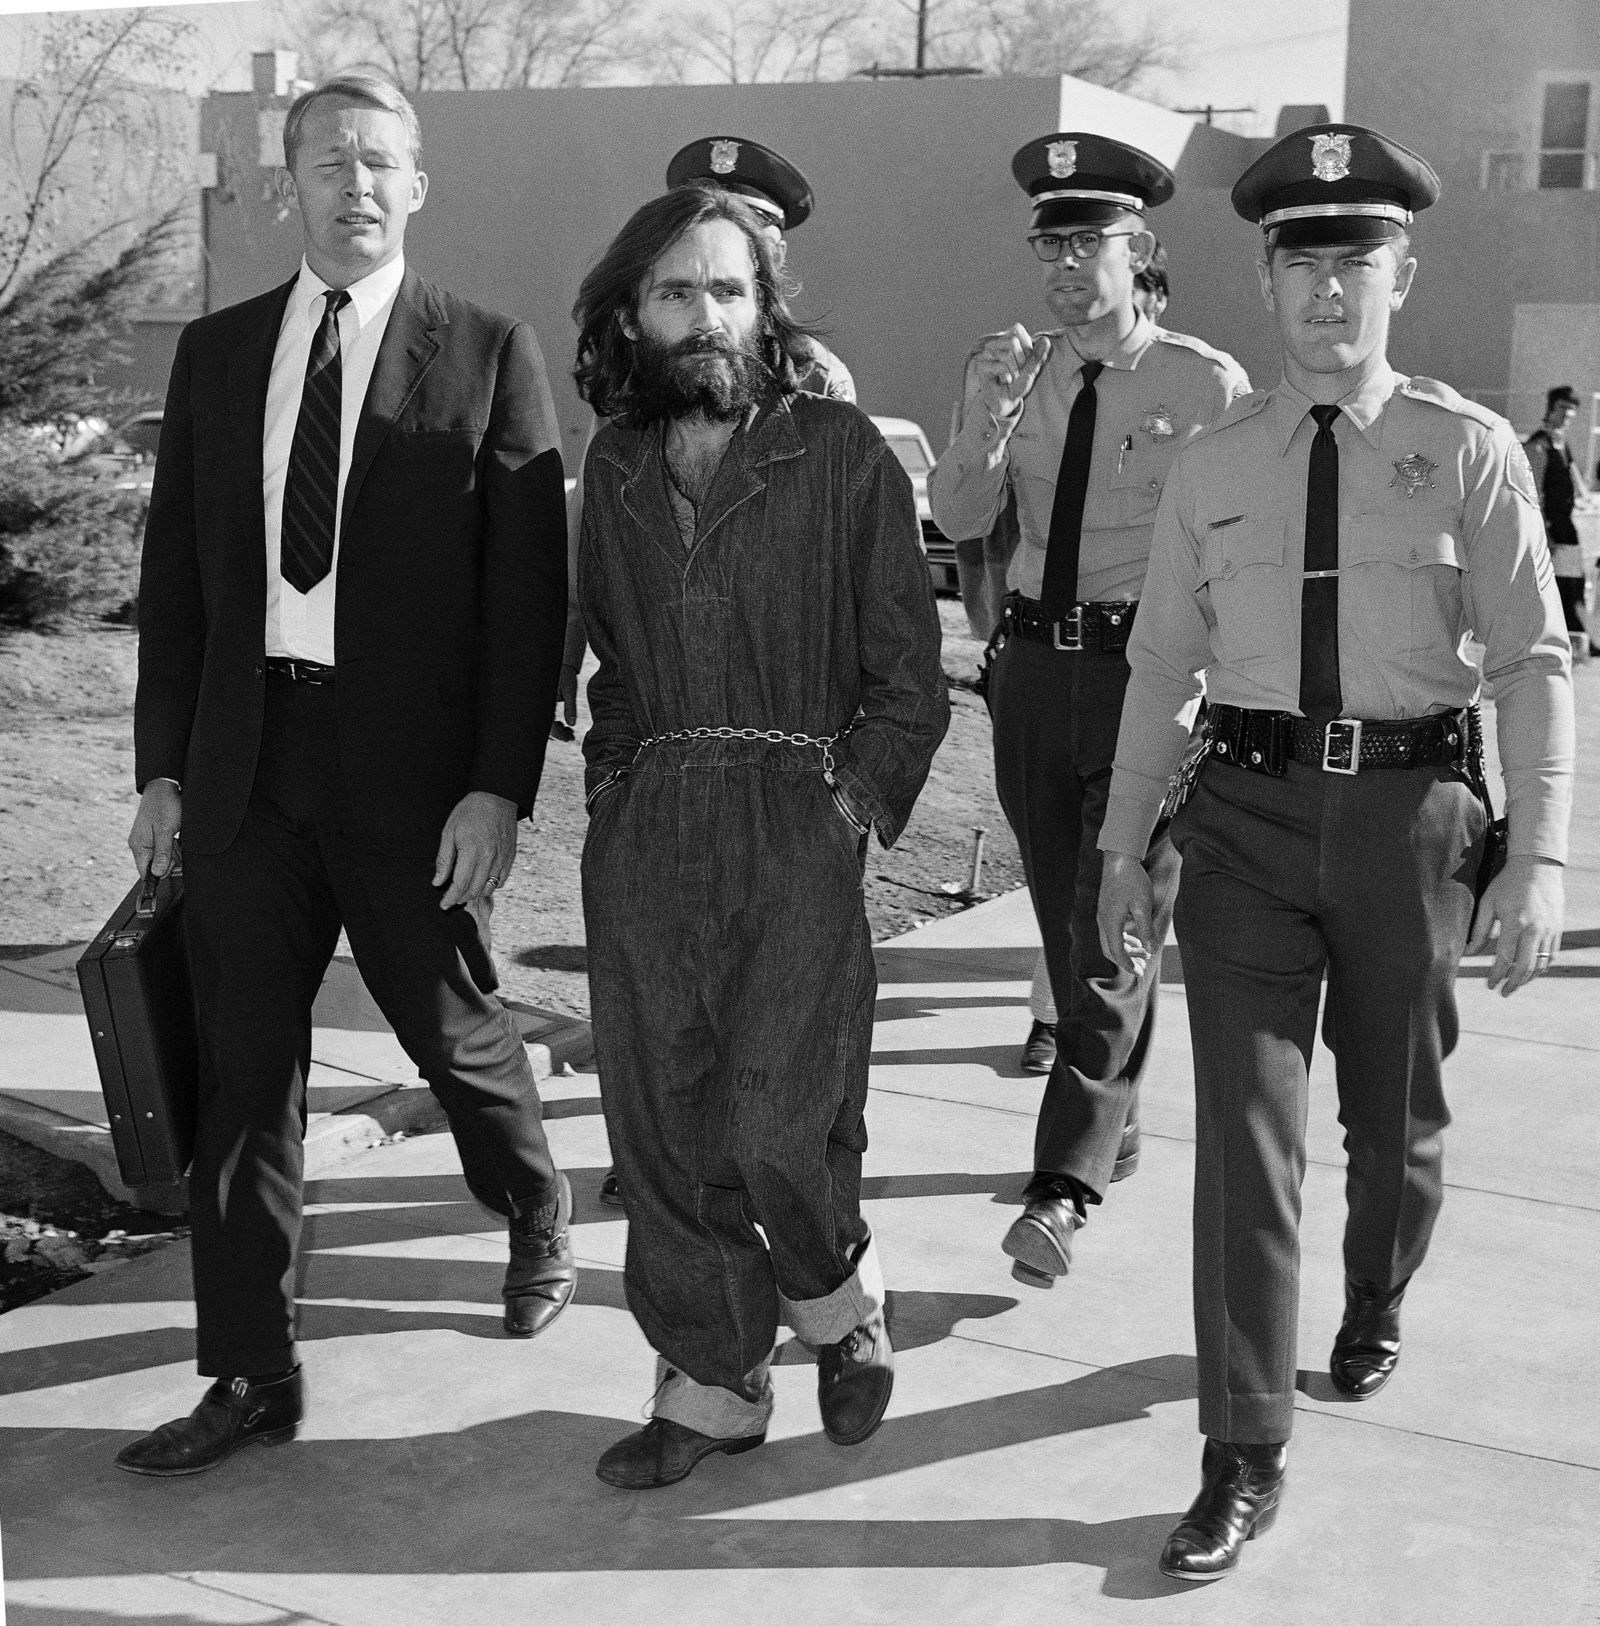 FILE - This Dec. 3, 1969, file photo shows Charles Manson en route to court in Independence, Calif., following his arrest at nearby Barker Ranch.{ } (AP Photo/Harold Filan, File)